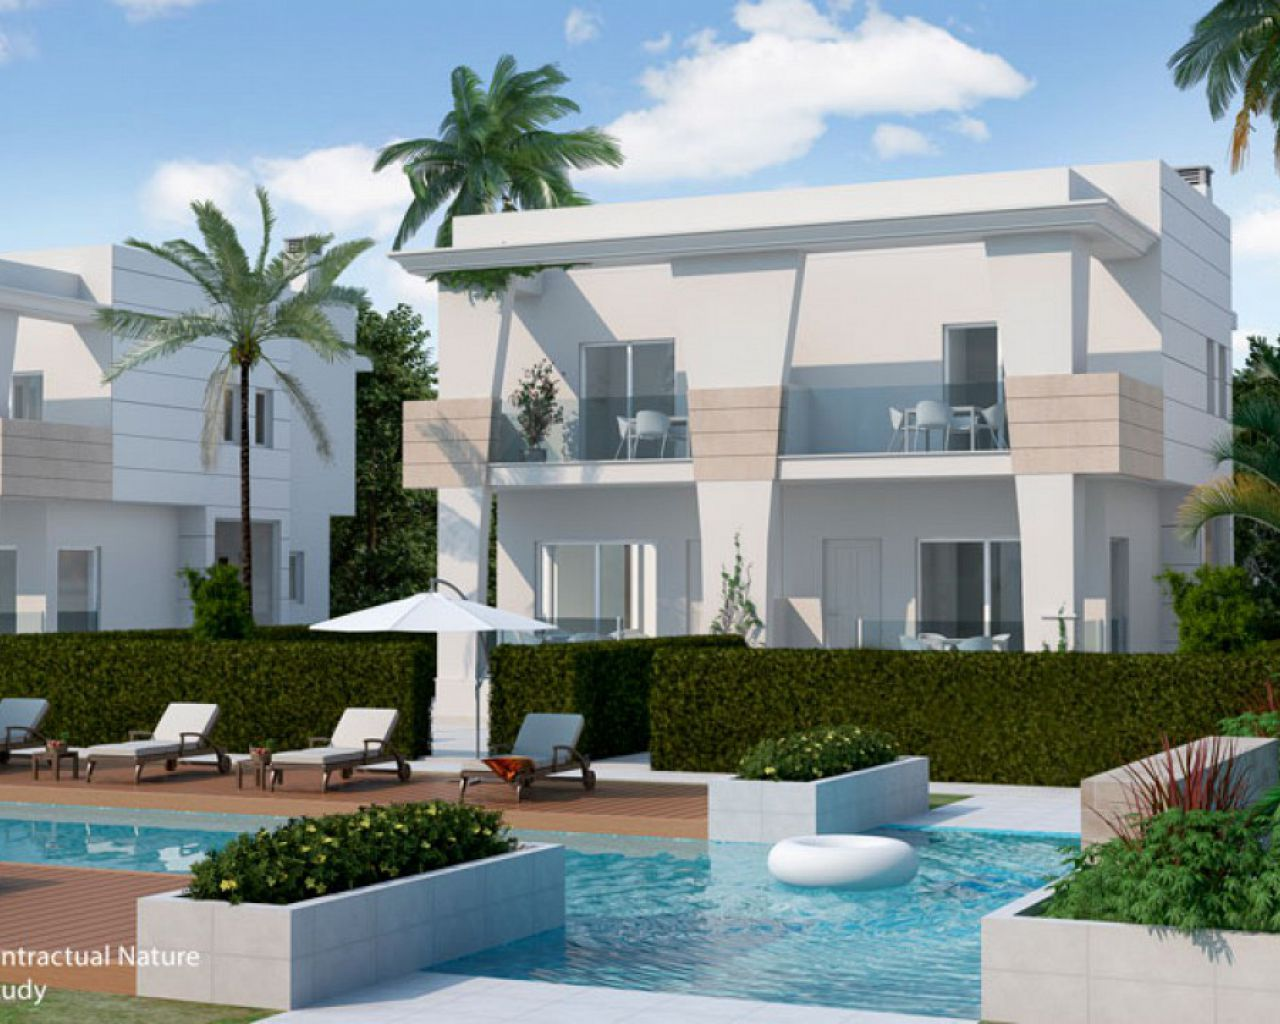 New Build - Duplex/Townhouses - Ciudad Quesada - Dona Pepa